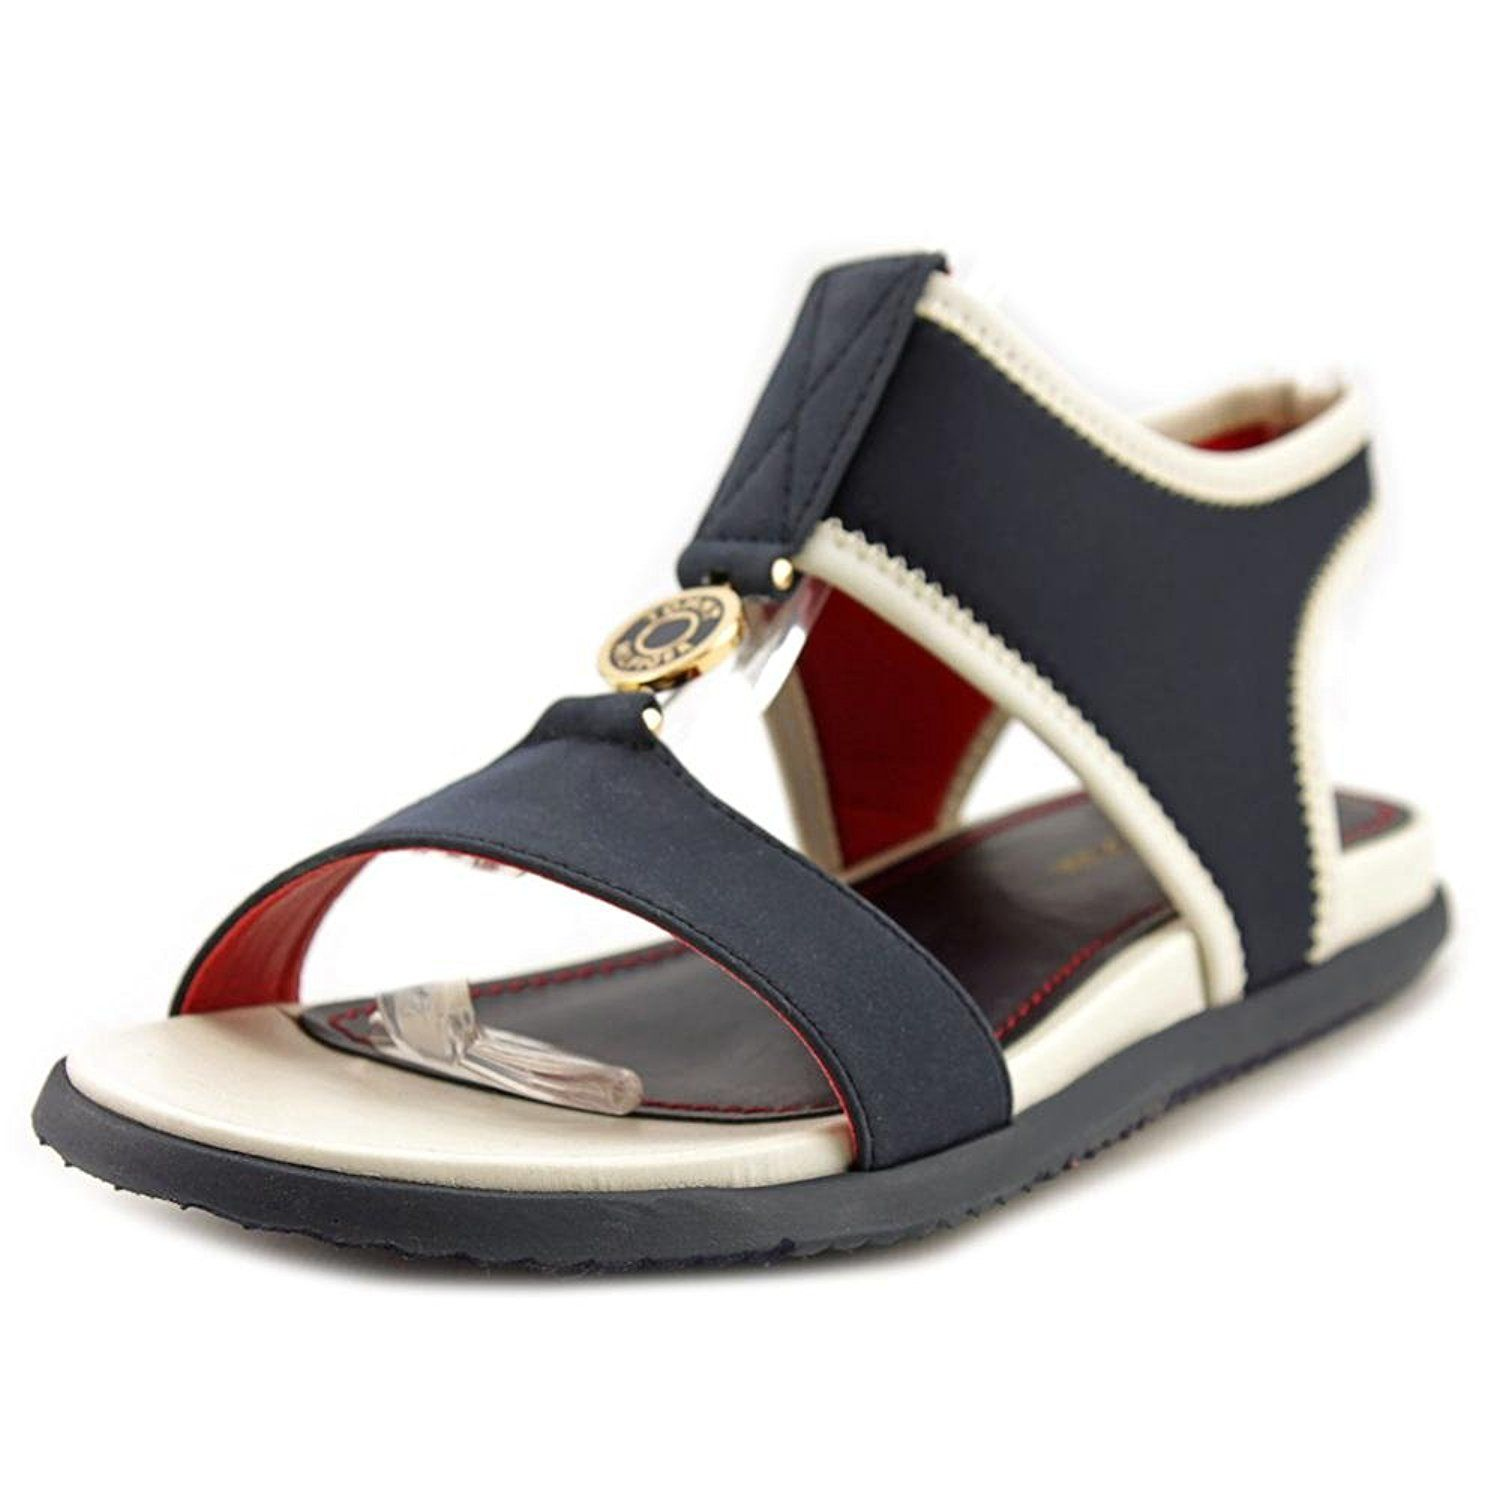 Tommy Hilfiger Christa Women US 8.5 Blue Open Toe Slingback Sandal -- Details can be found by clicking on the image.